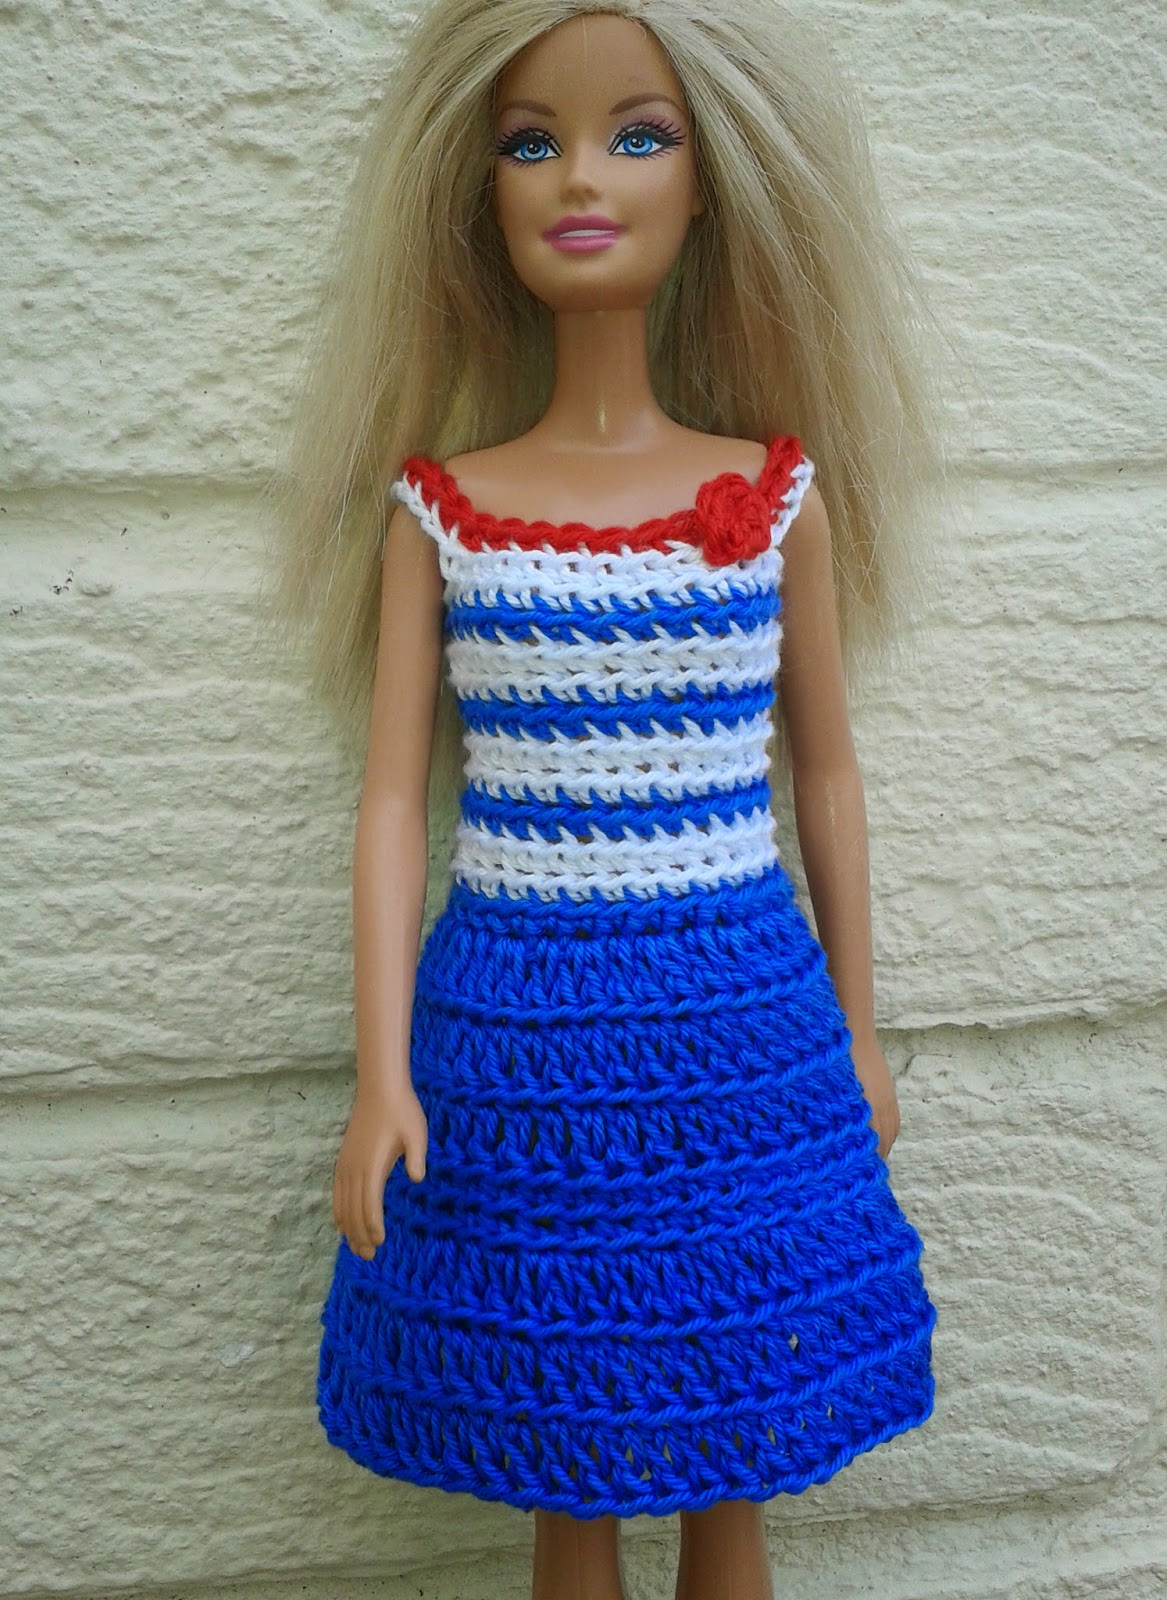 Awesome Linmary Knits Barbie Crochet Nautical Dress Barbie Doll Clothes Patterns Of Contemporary 50 Pictures Barbie Doll Clothes Patterns